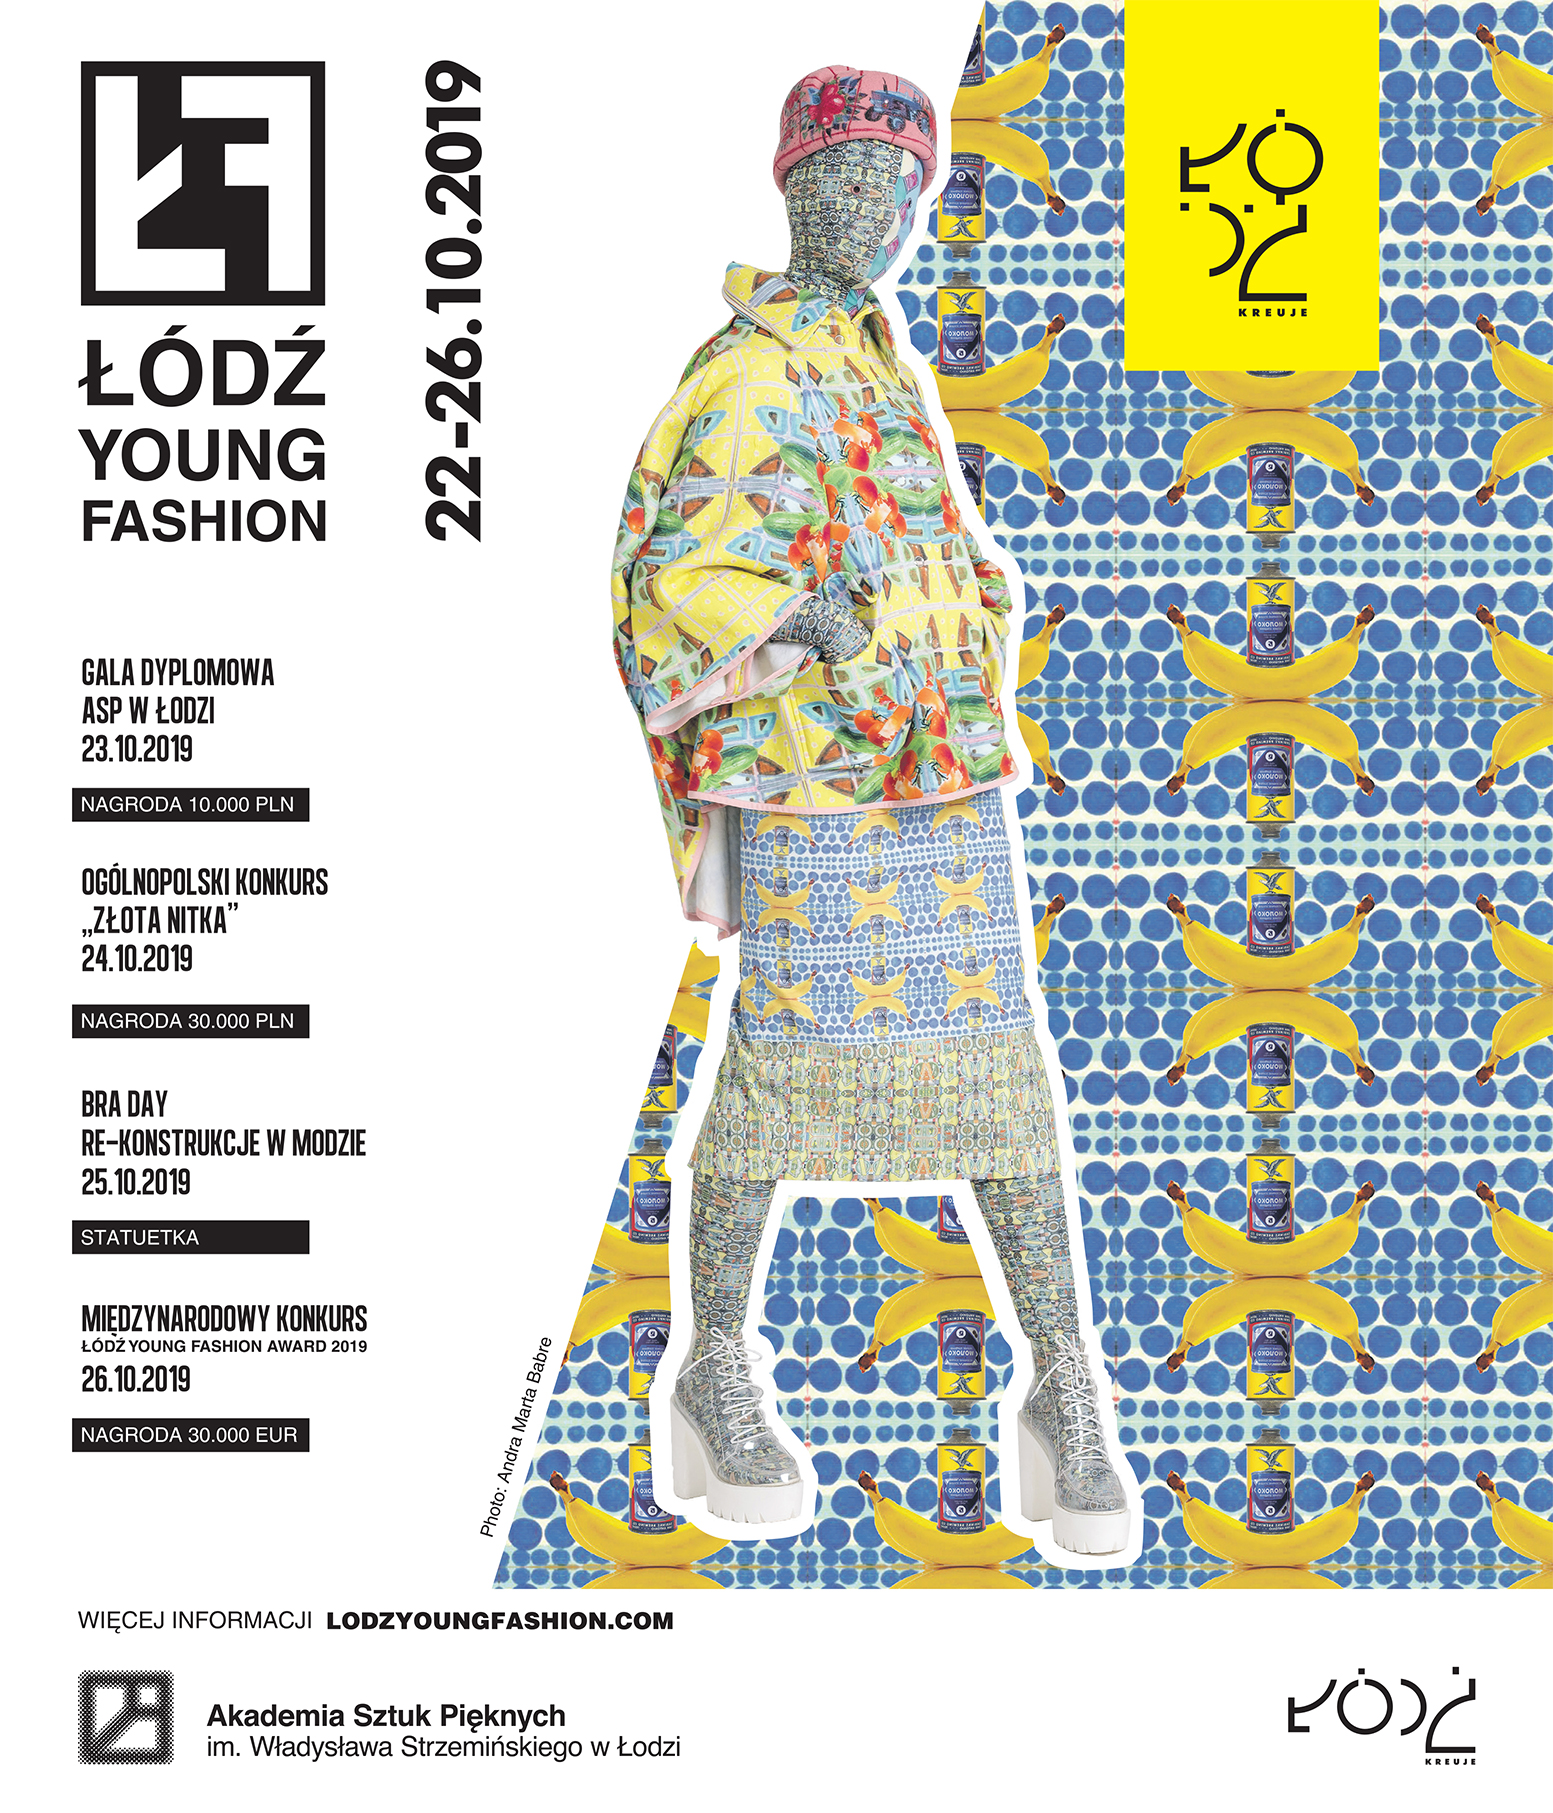 ŁÓDŹ YOUNG FASHION 2019 Z AGATĄ TANTER